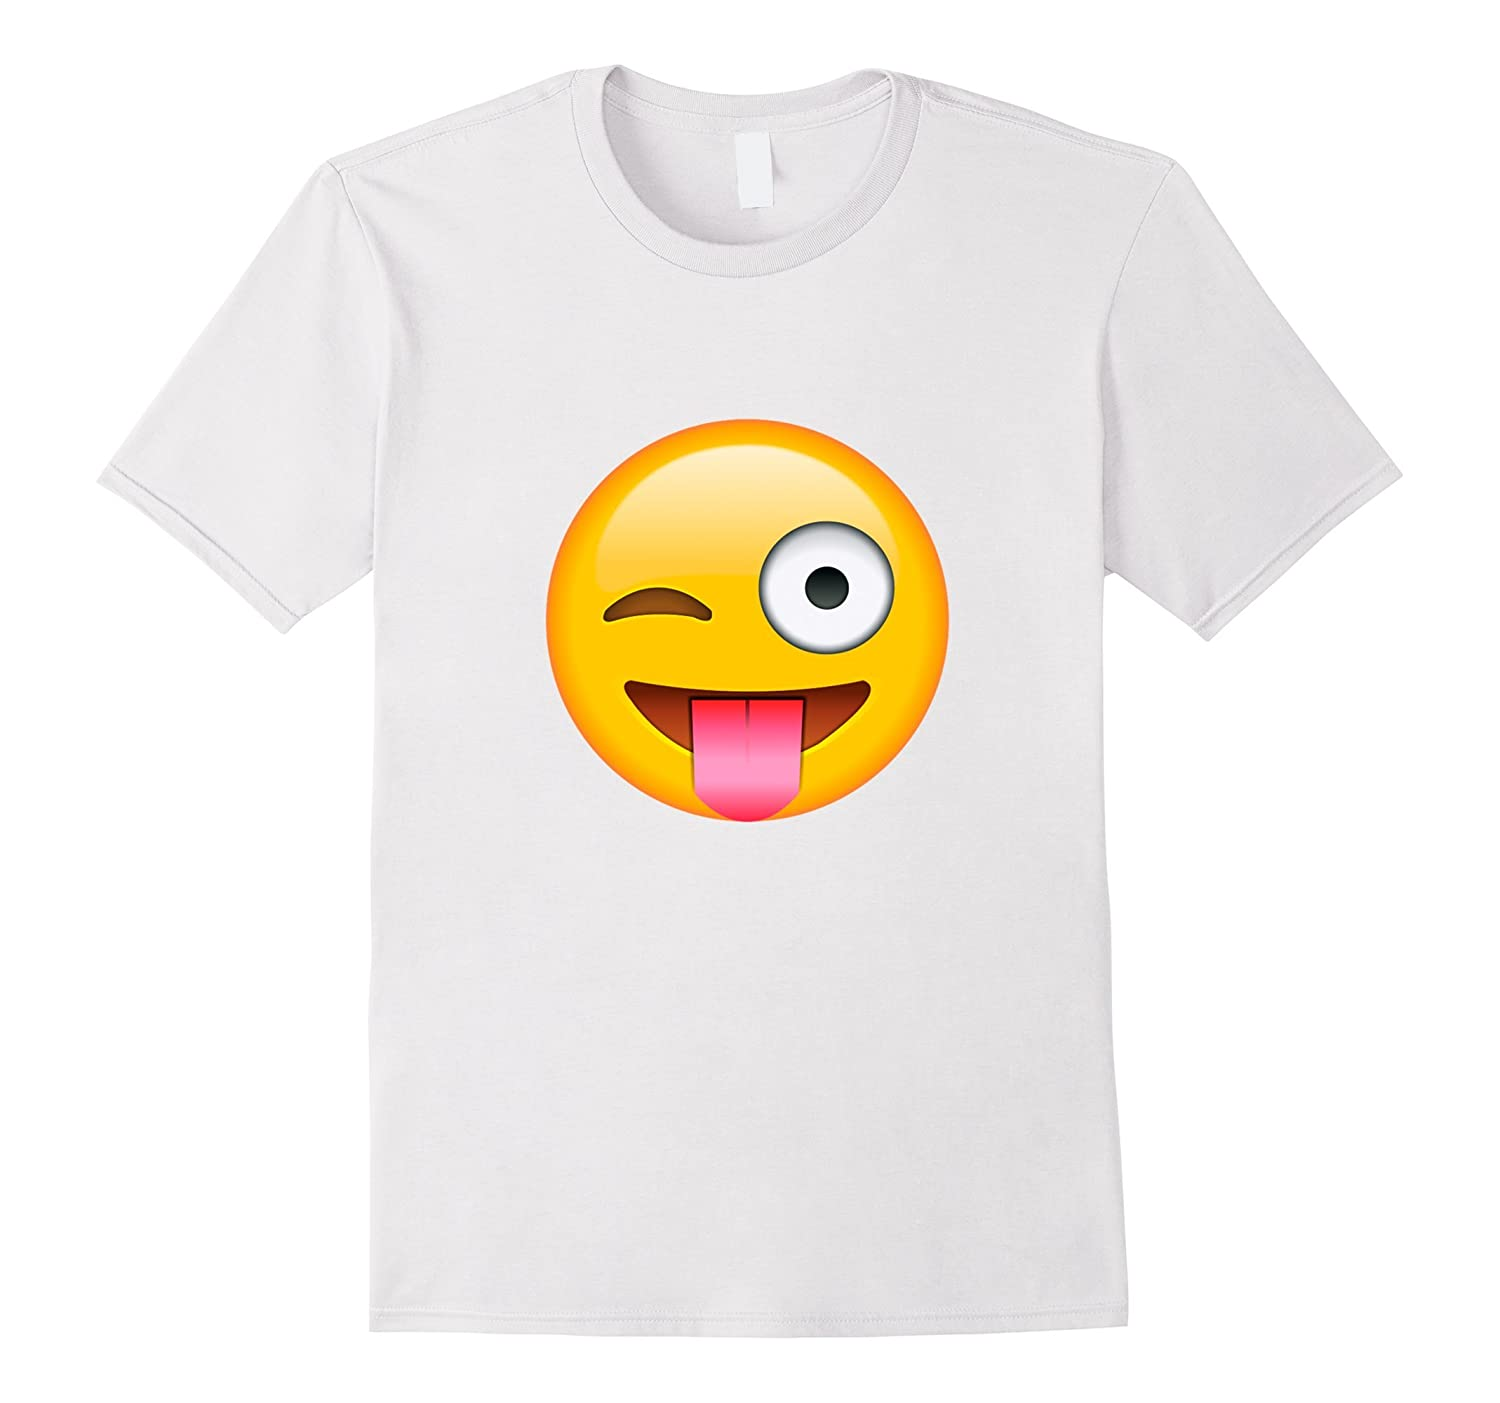 295cfc6b4 Face Emoticon Tongue Out Emoji with Winking Eye T-shirt-ANZ - Anztshirt